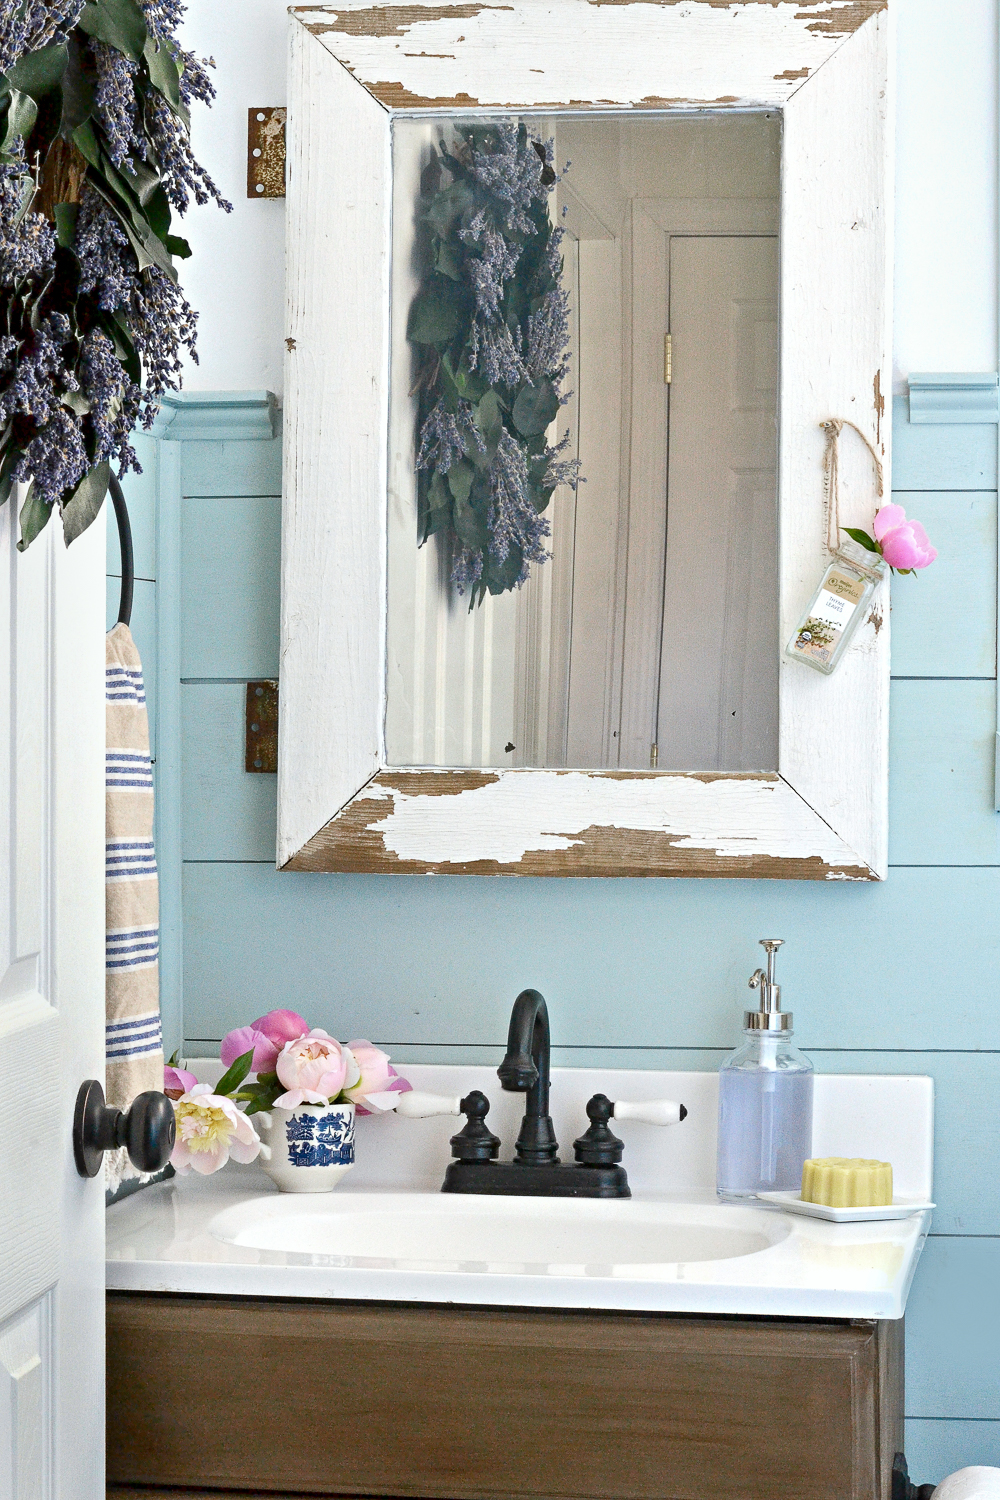 How to paint a vanity to look like wood. Painting laminate is easier than it seems!